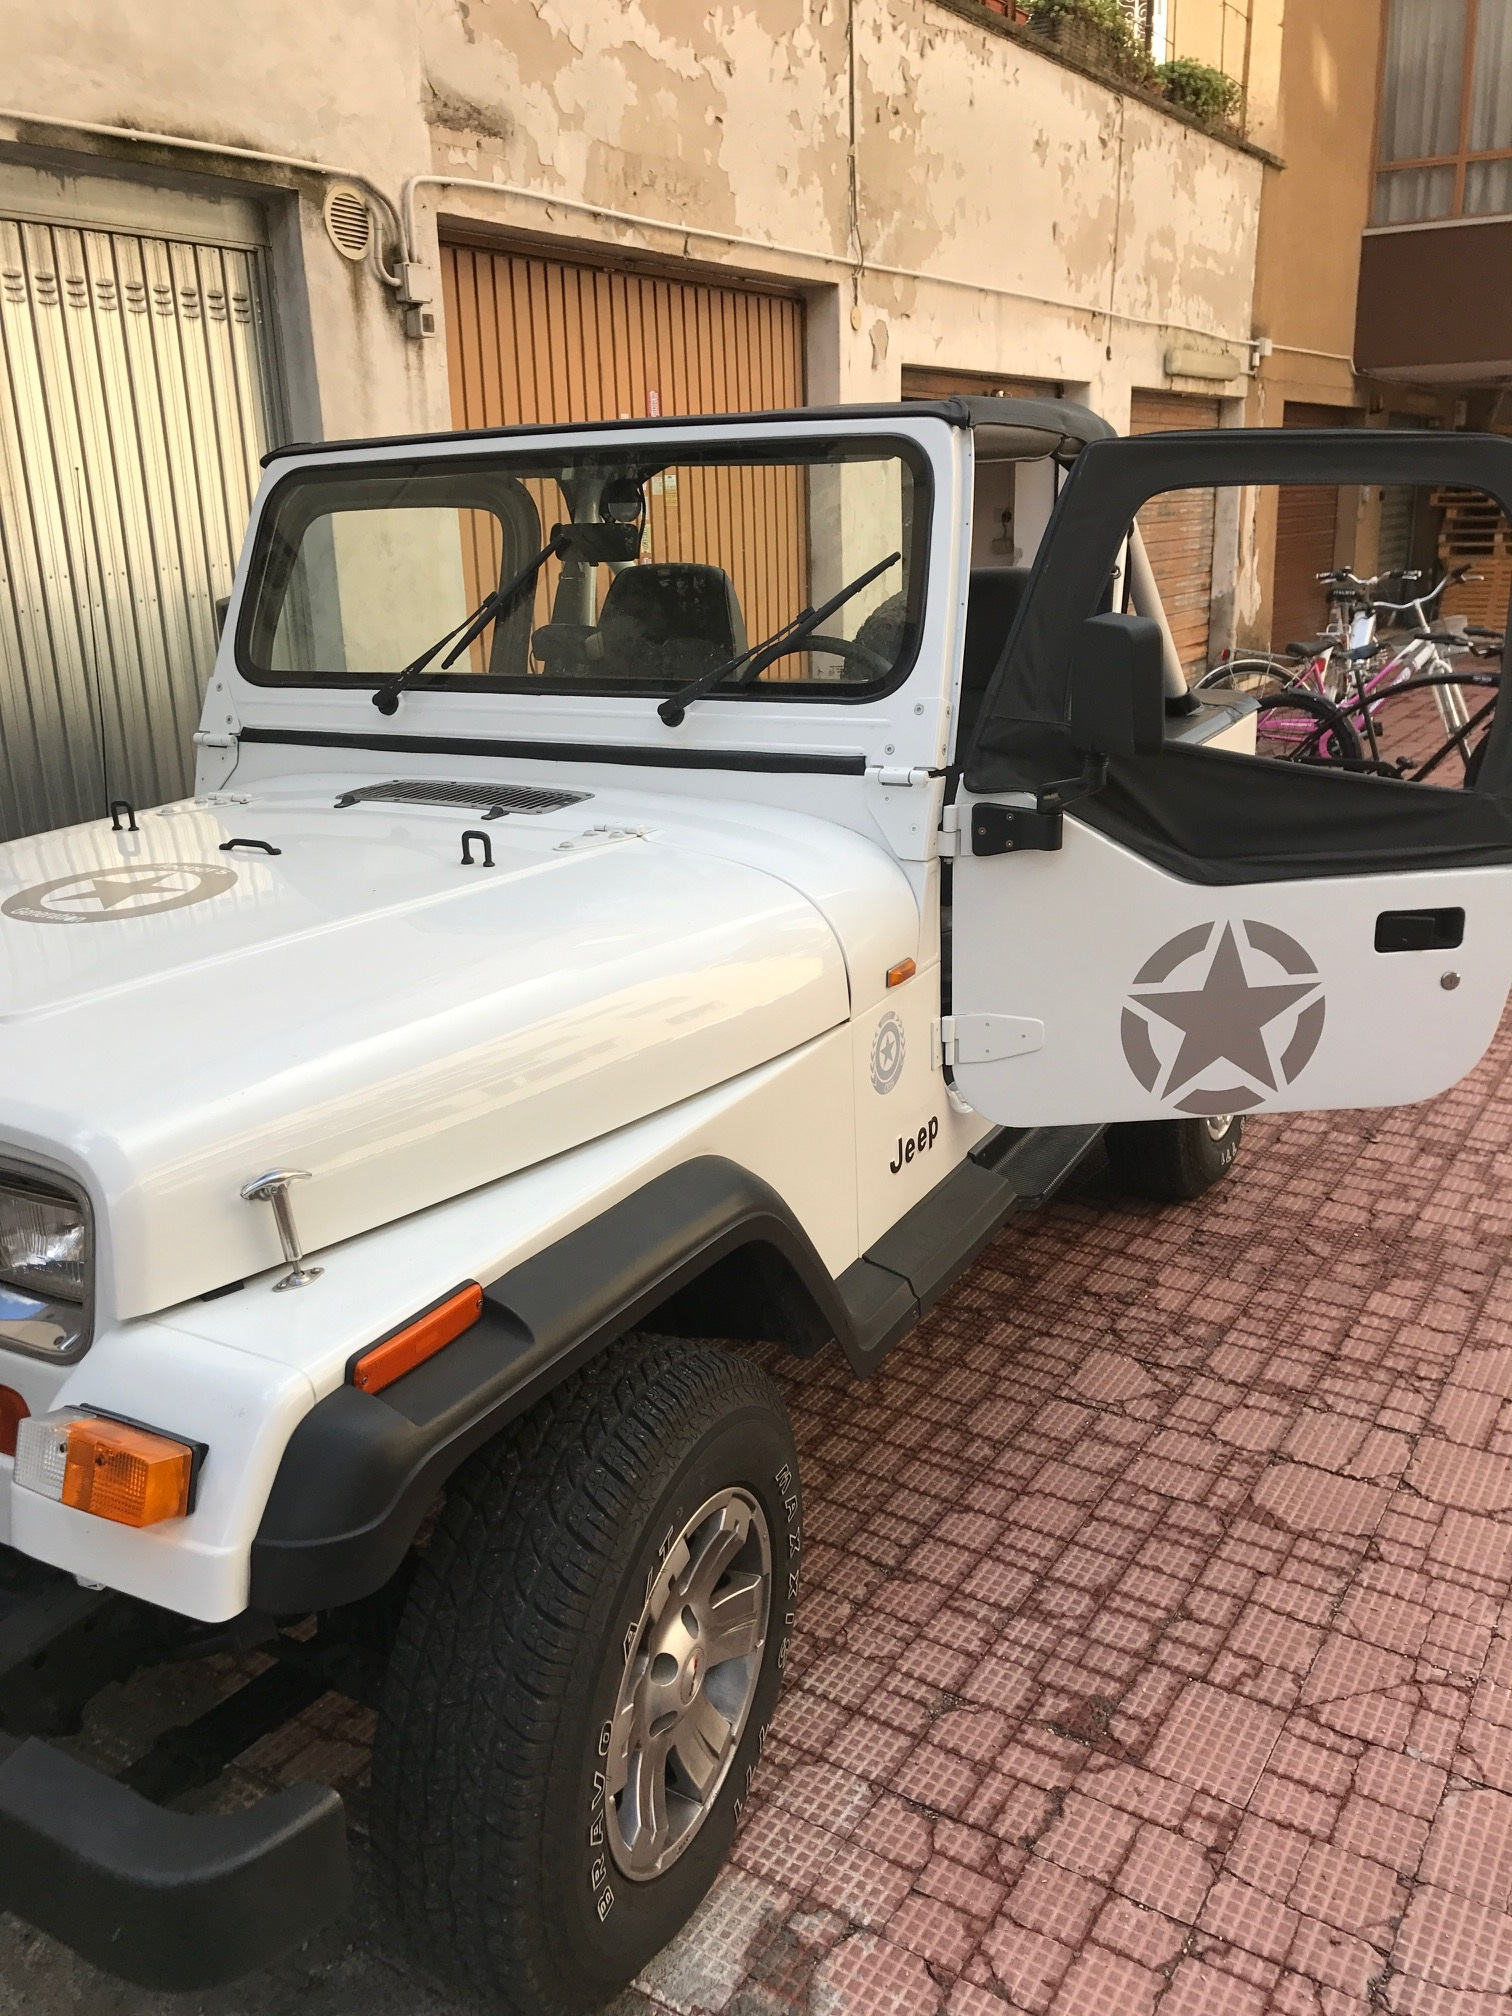 Wrangler yj dal 1987 al 1996 jeepgeneration since 1997 for Moquette jeep wrangler yj